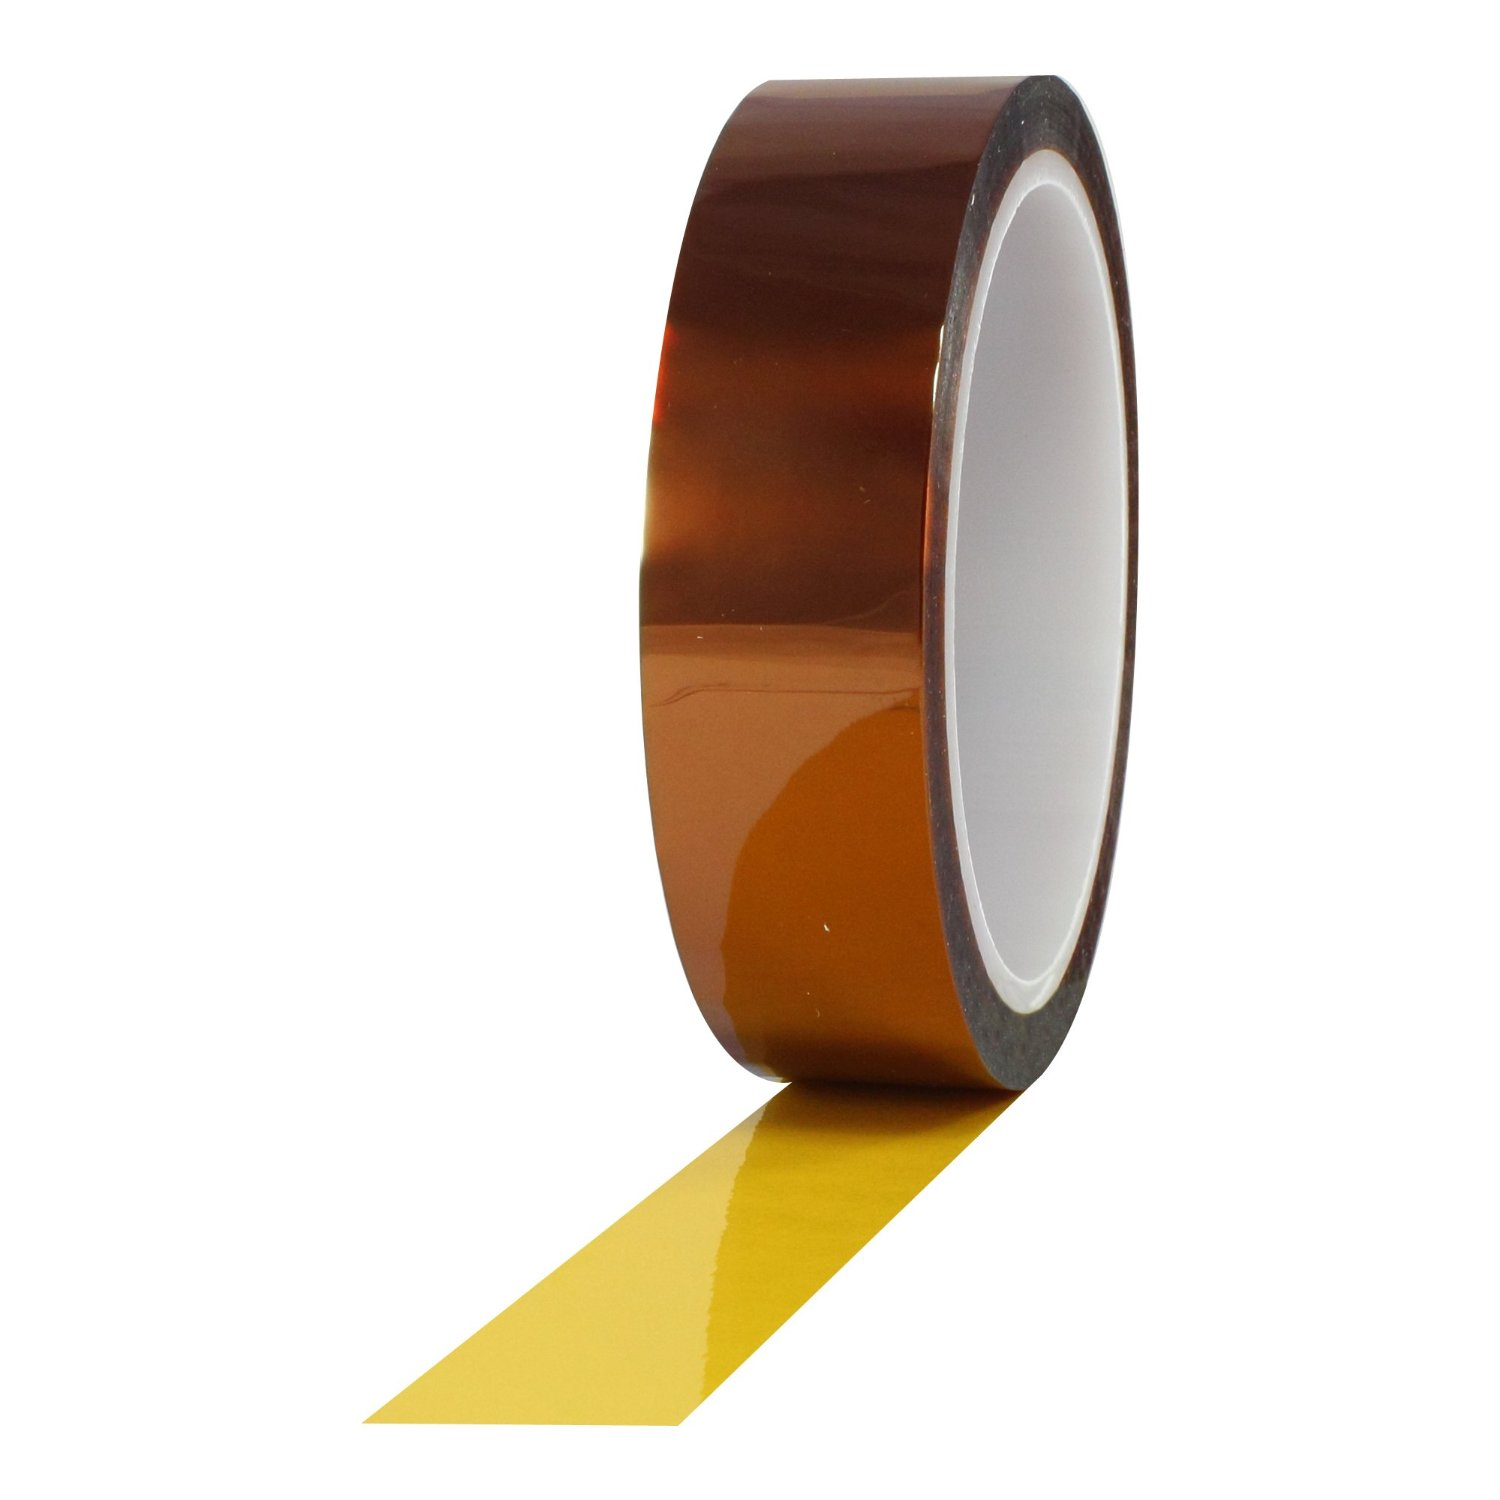 "ProTapes Pro 950 Polyimide Film Tape, 7500V Dielectric Strength, 36 yds Length x 1/2"" Width (Pack of 1)"